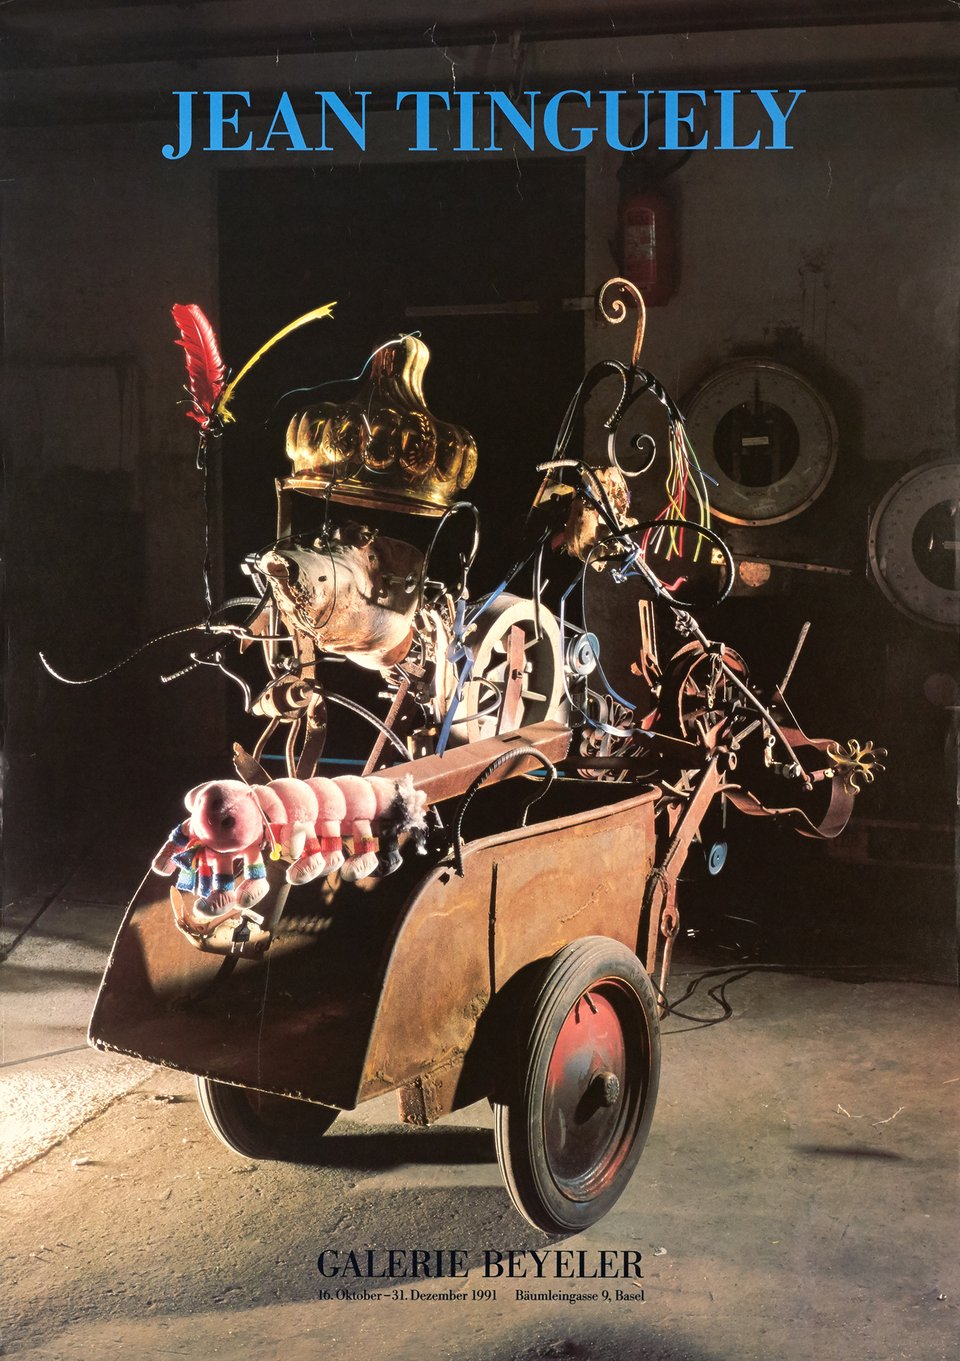 Galerie Beyeler, Jean Tinguely – Affiche ancienne – Jean TINGUELY – 1991